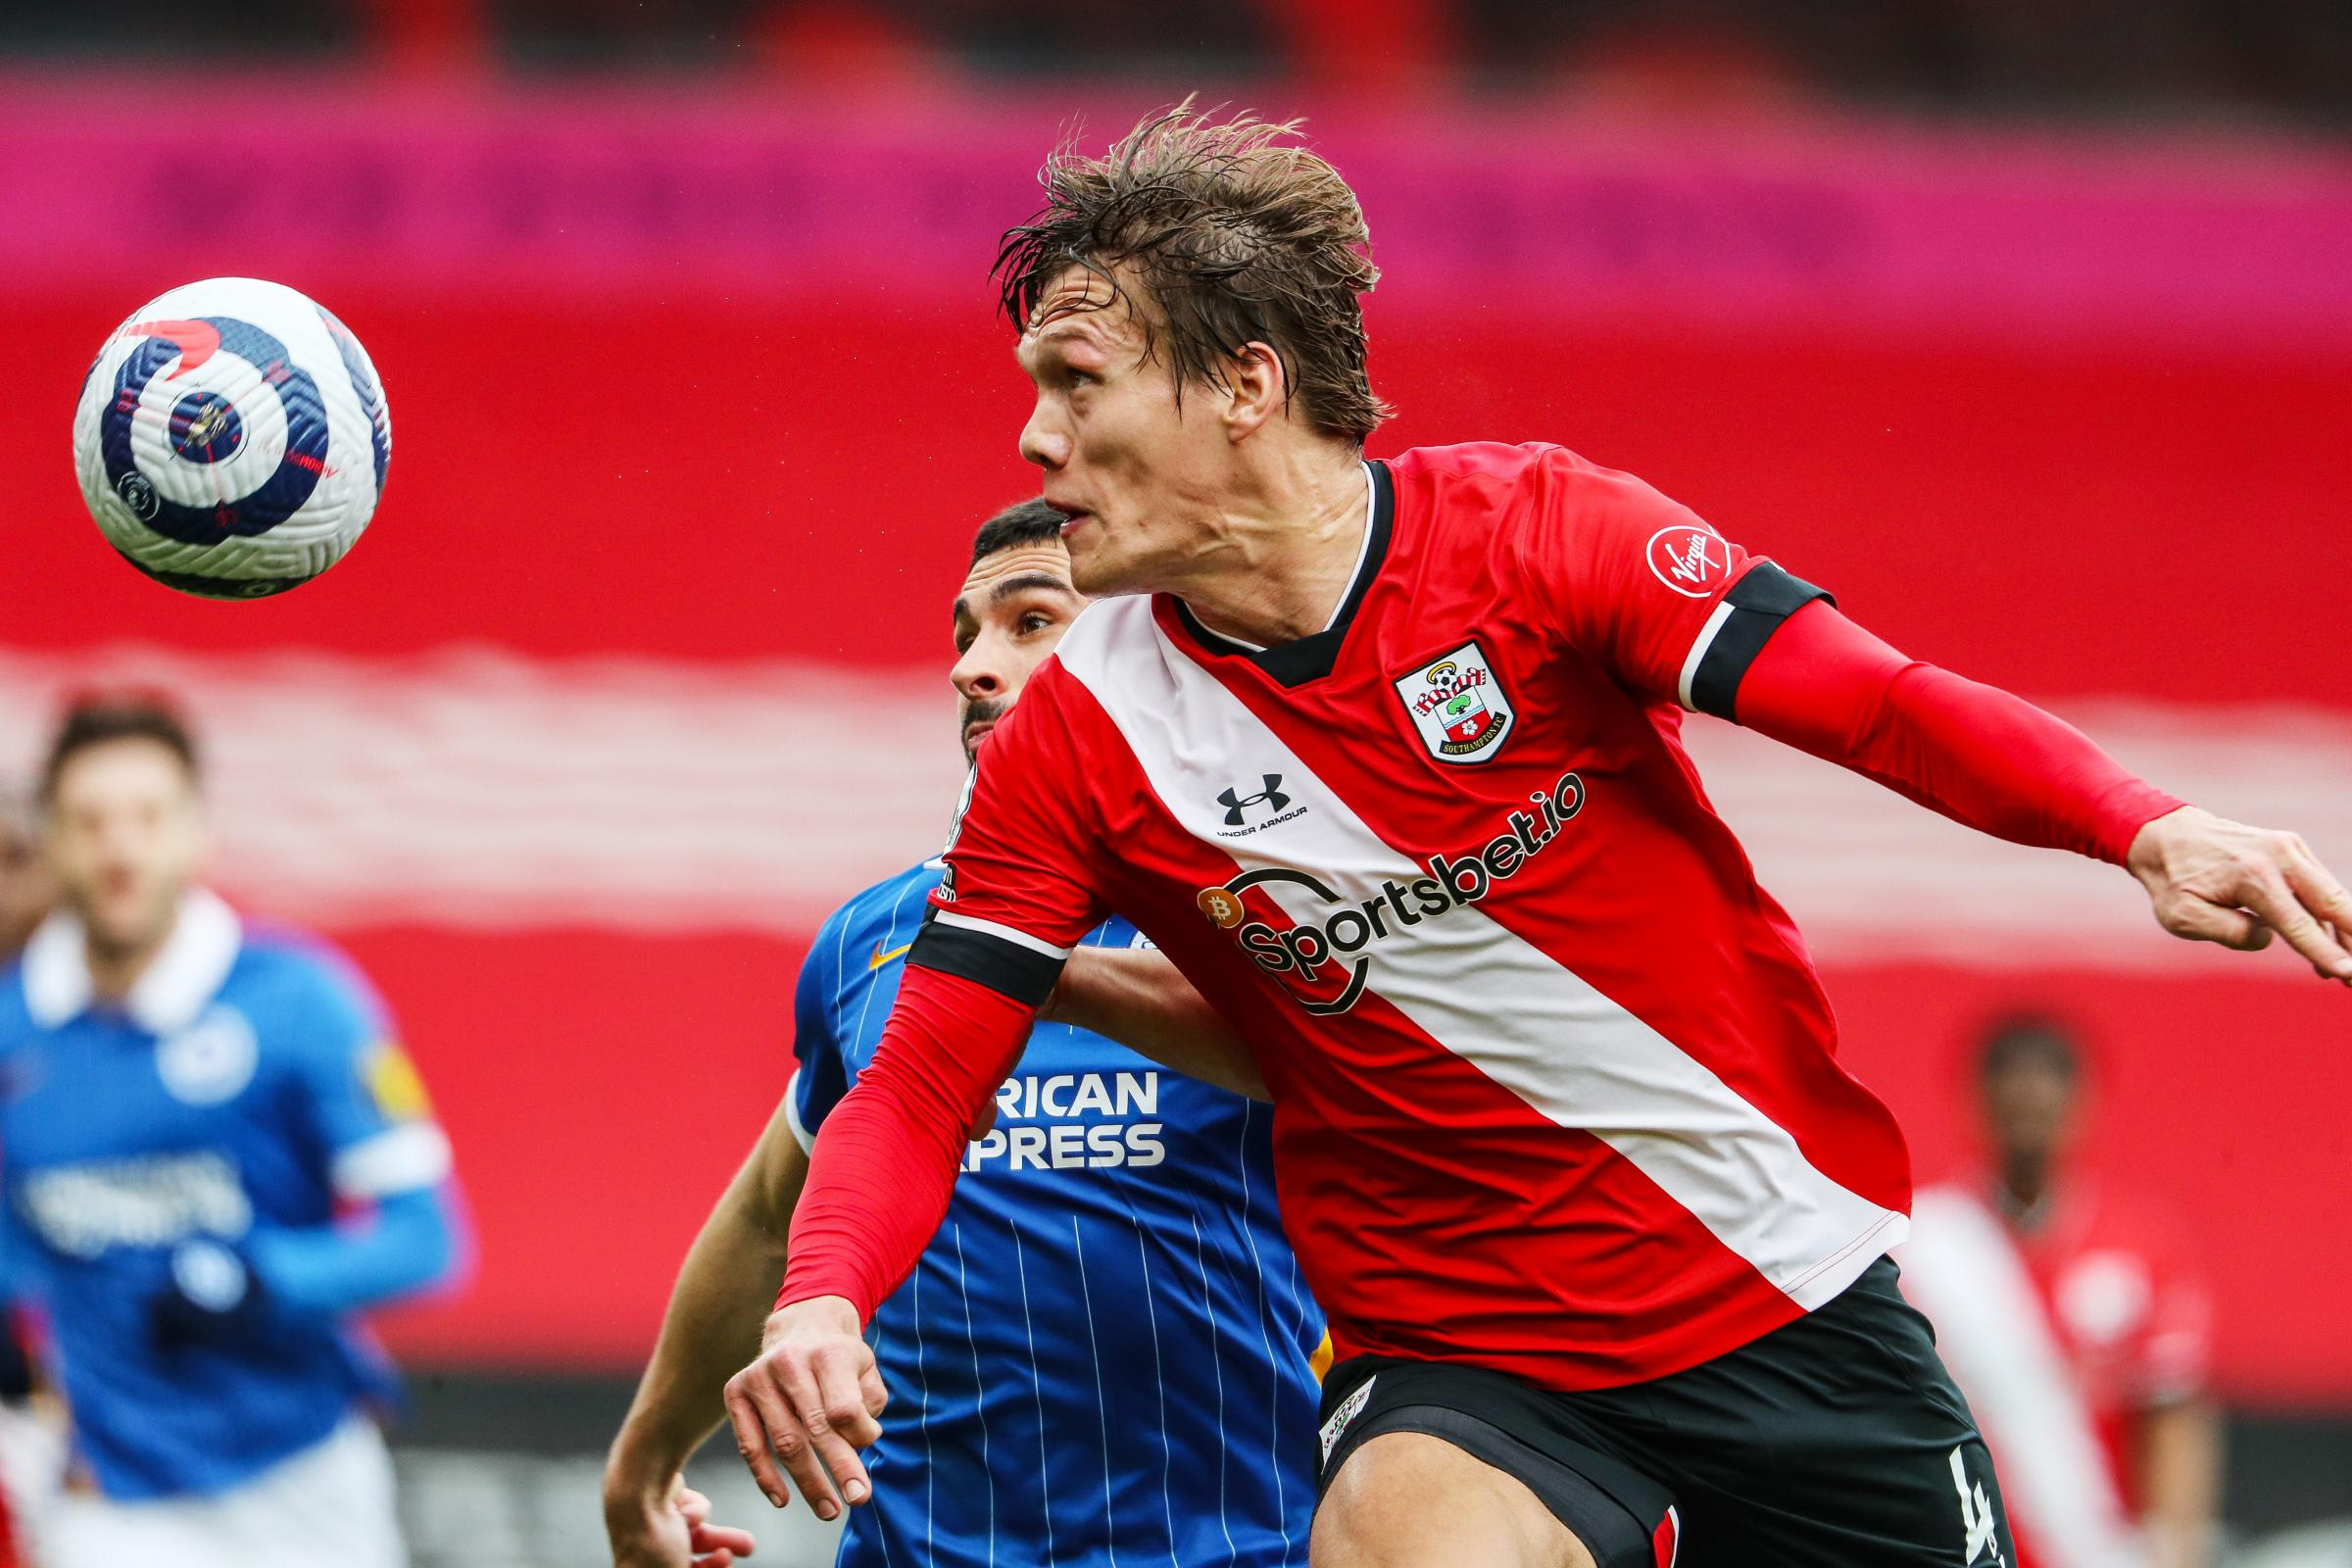 Leicester boss Rodgers wants Vestergaard to play at weekend